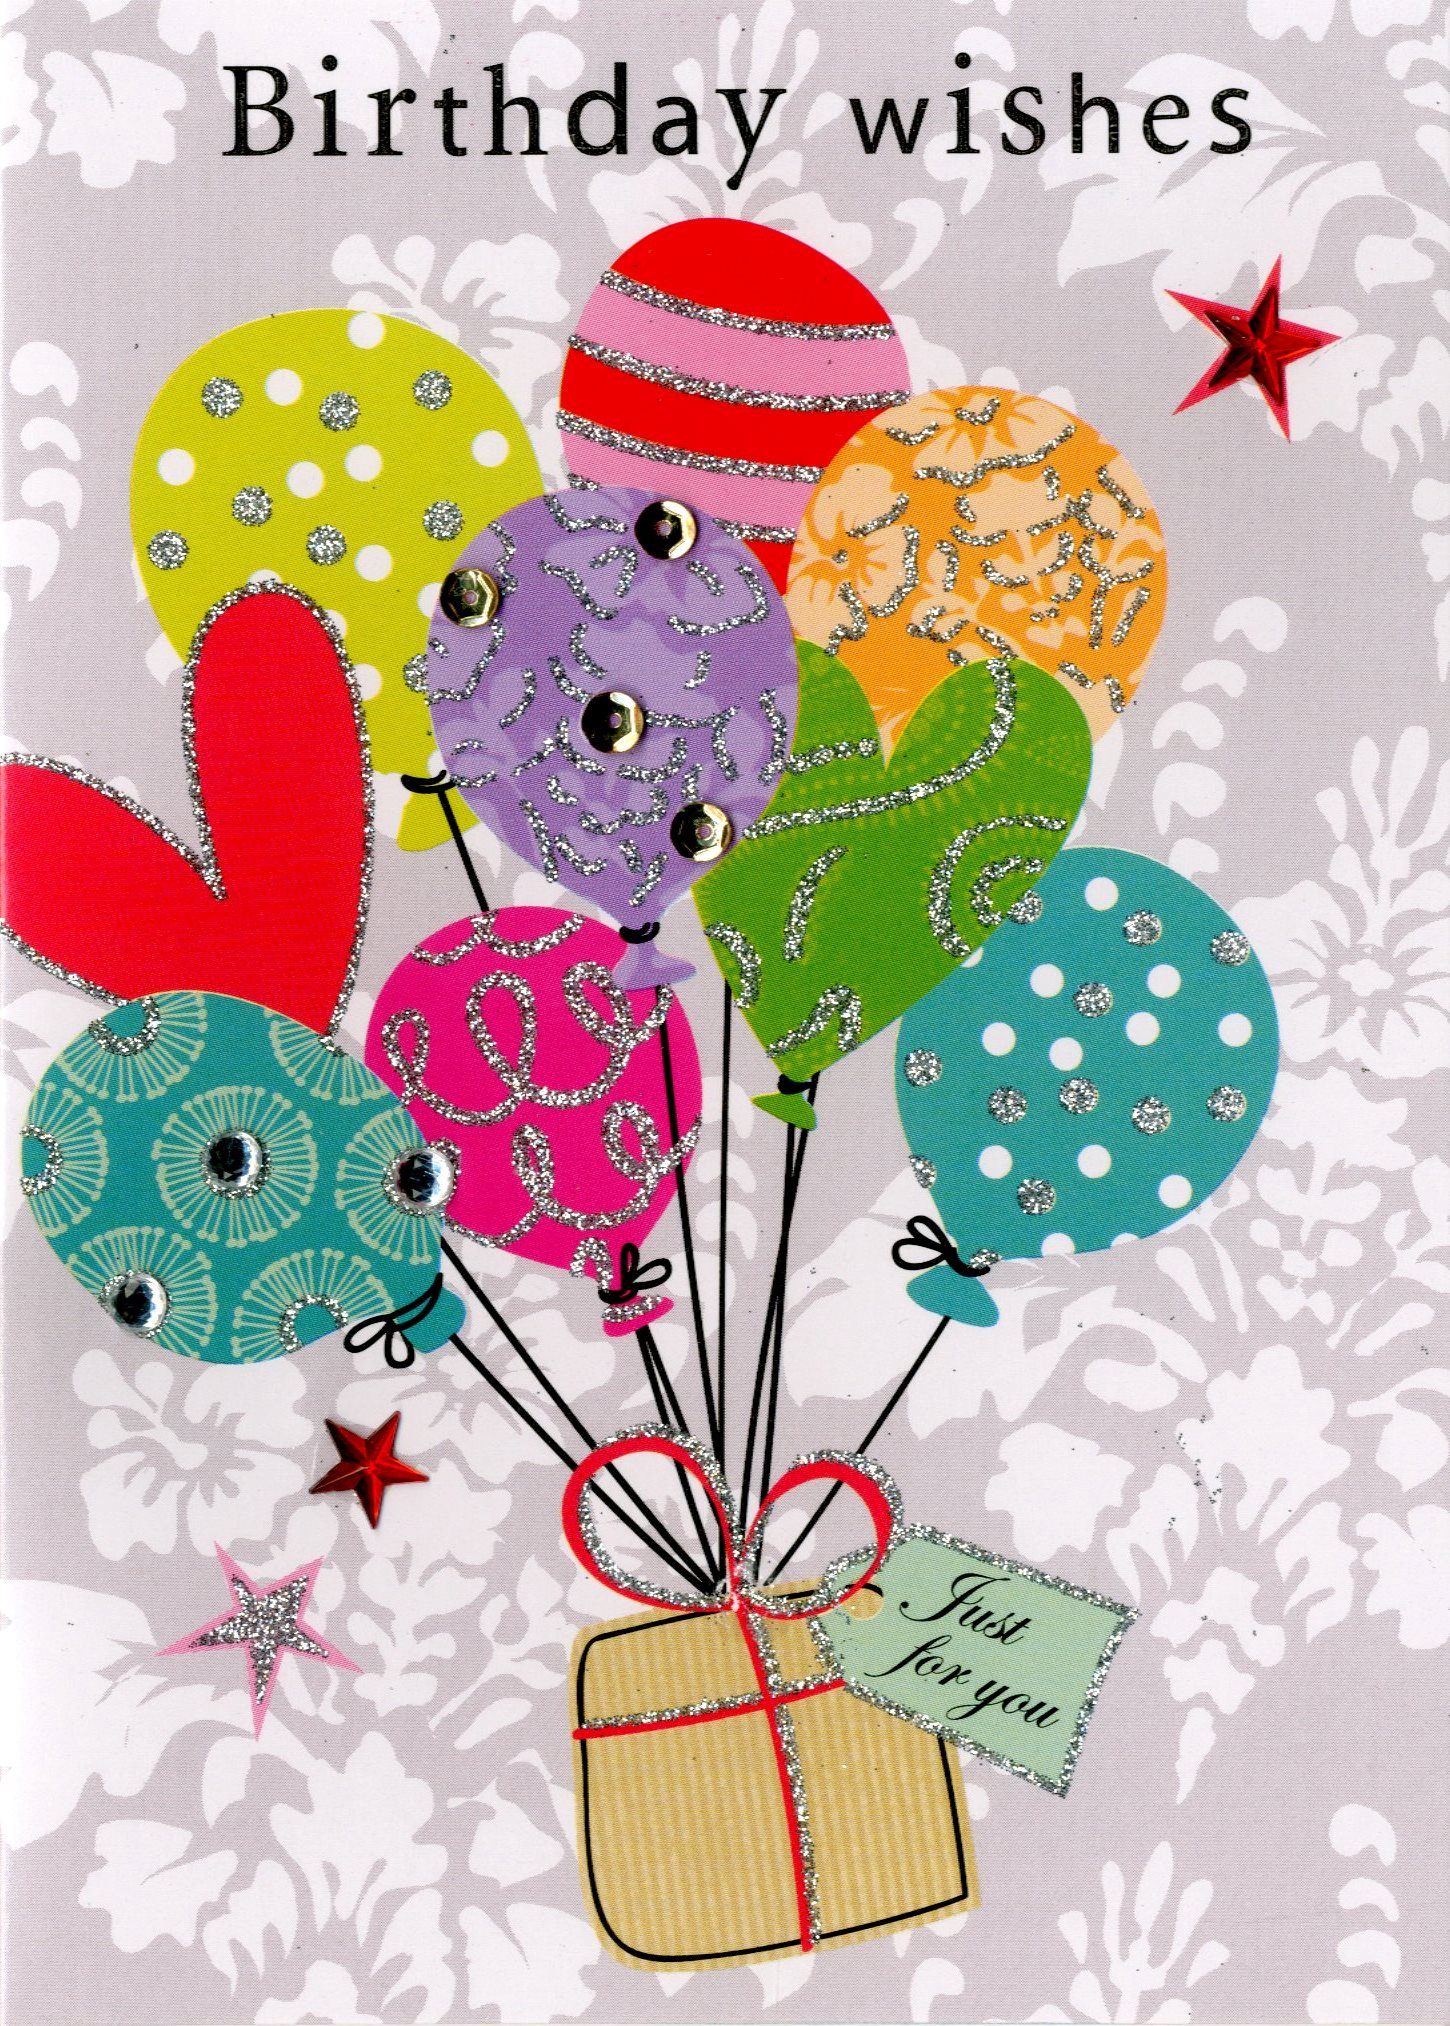 Birthday Wishes Embellished Greeting Card Hand-Finished Candy